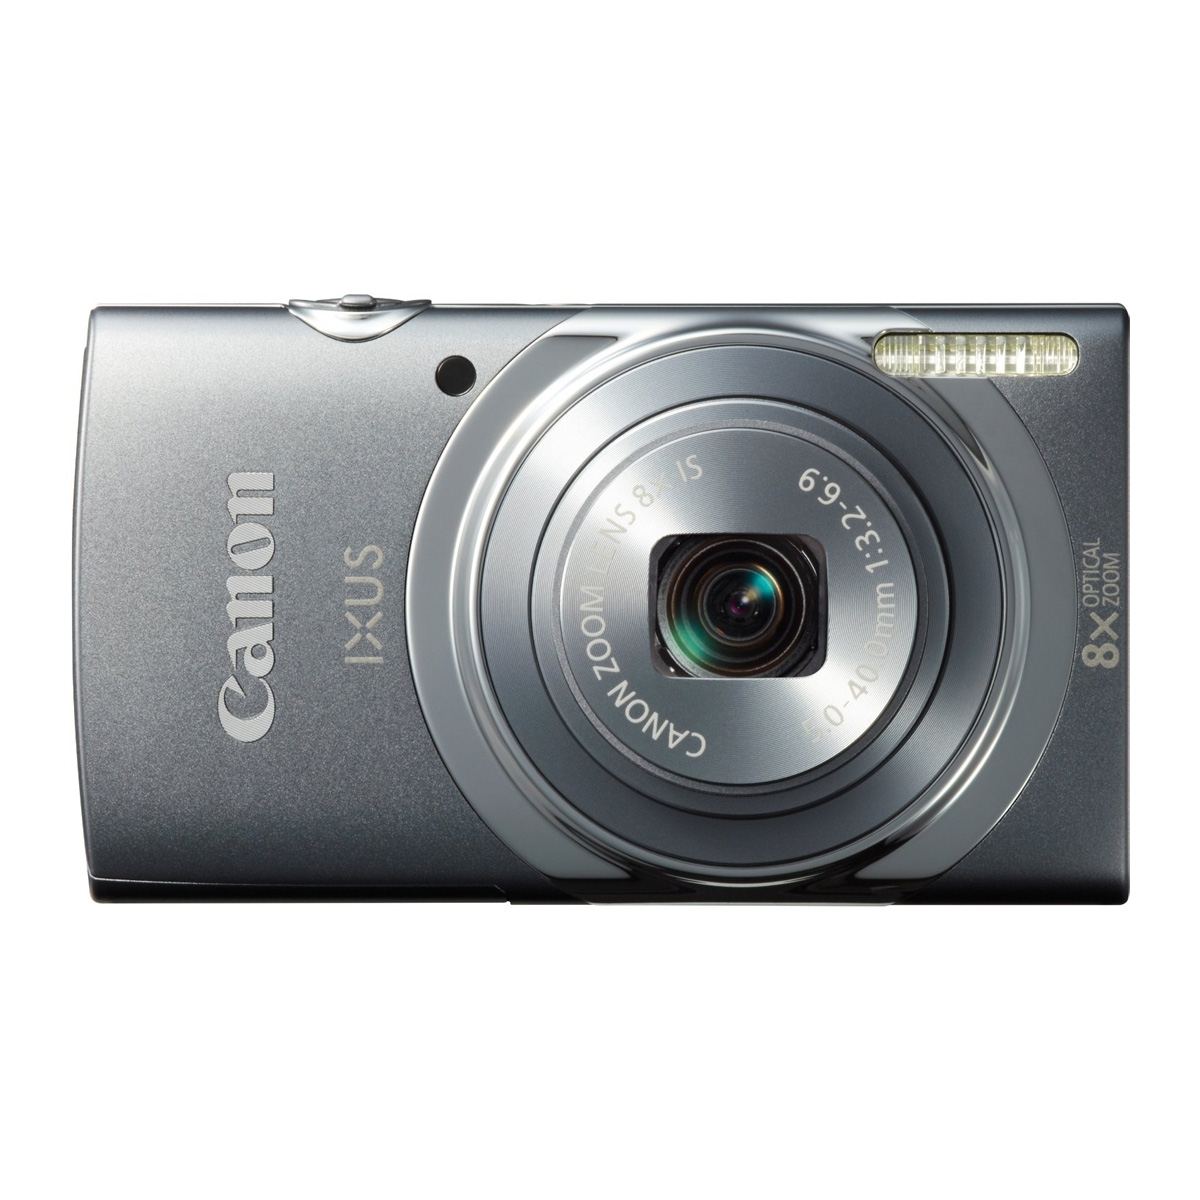 canon ixus 150 hs 16mp digital camera grey. Black Bedroom Furniture Sets. Home Design Ideas